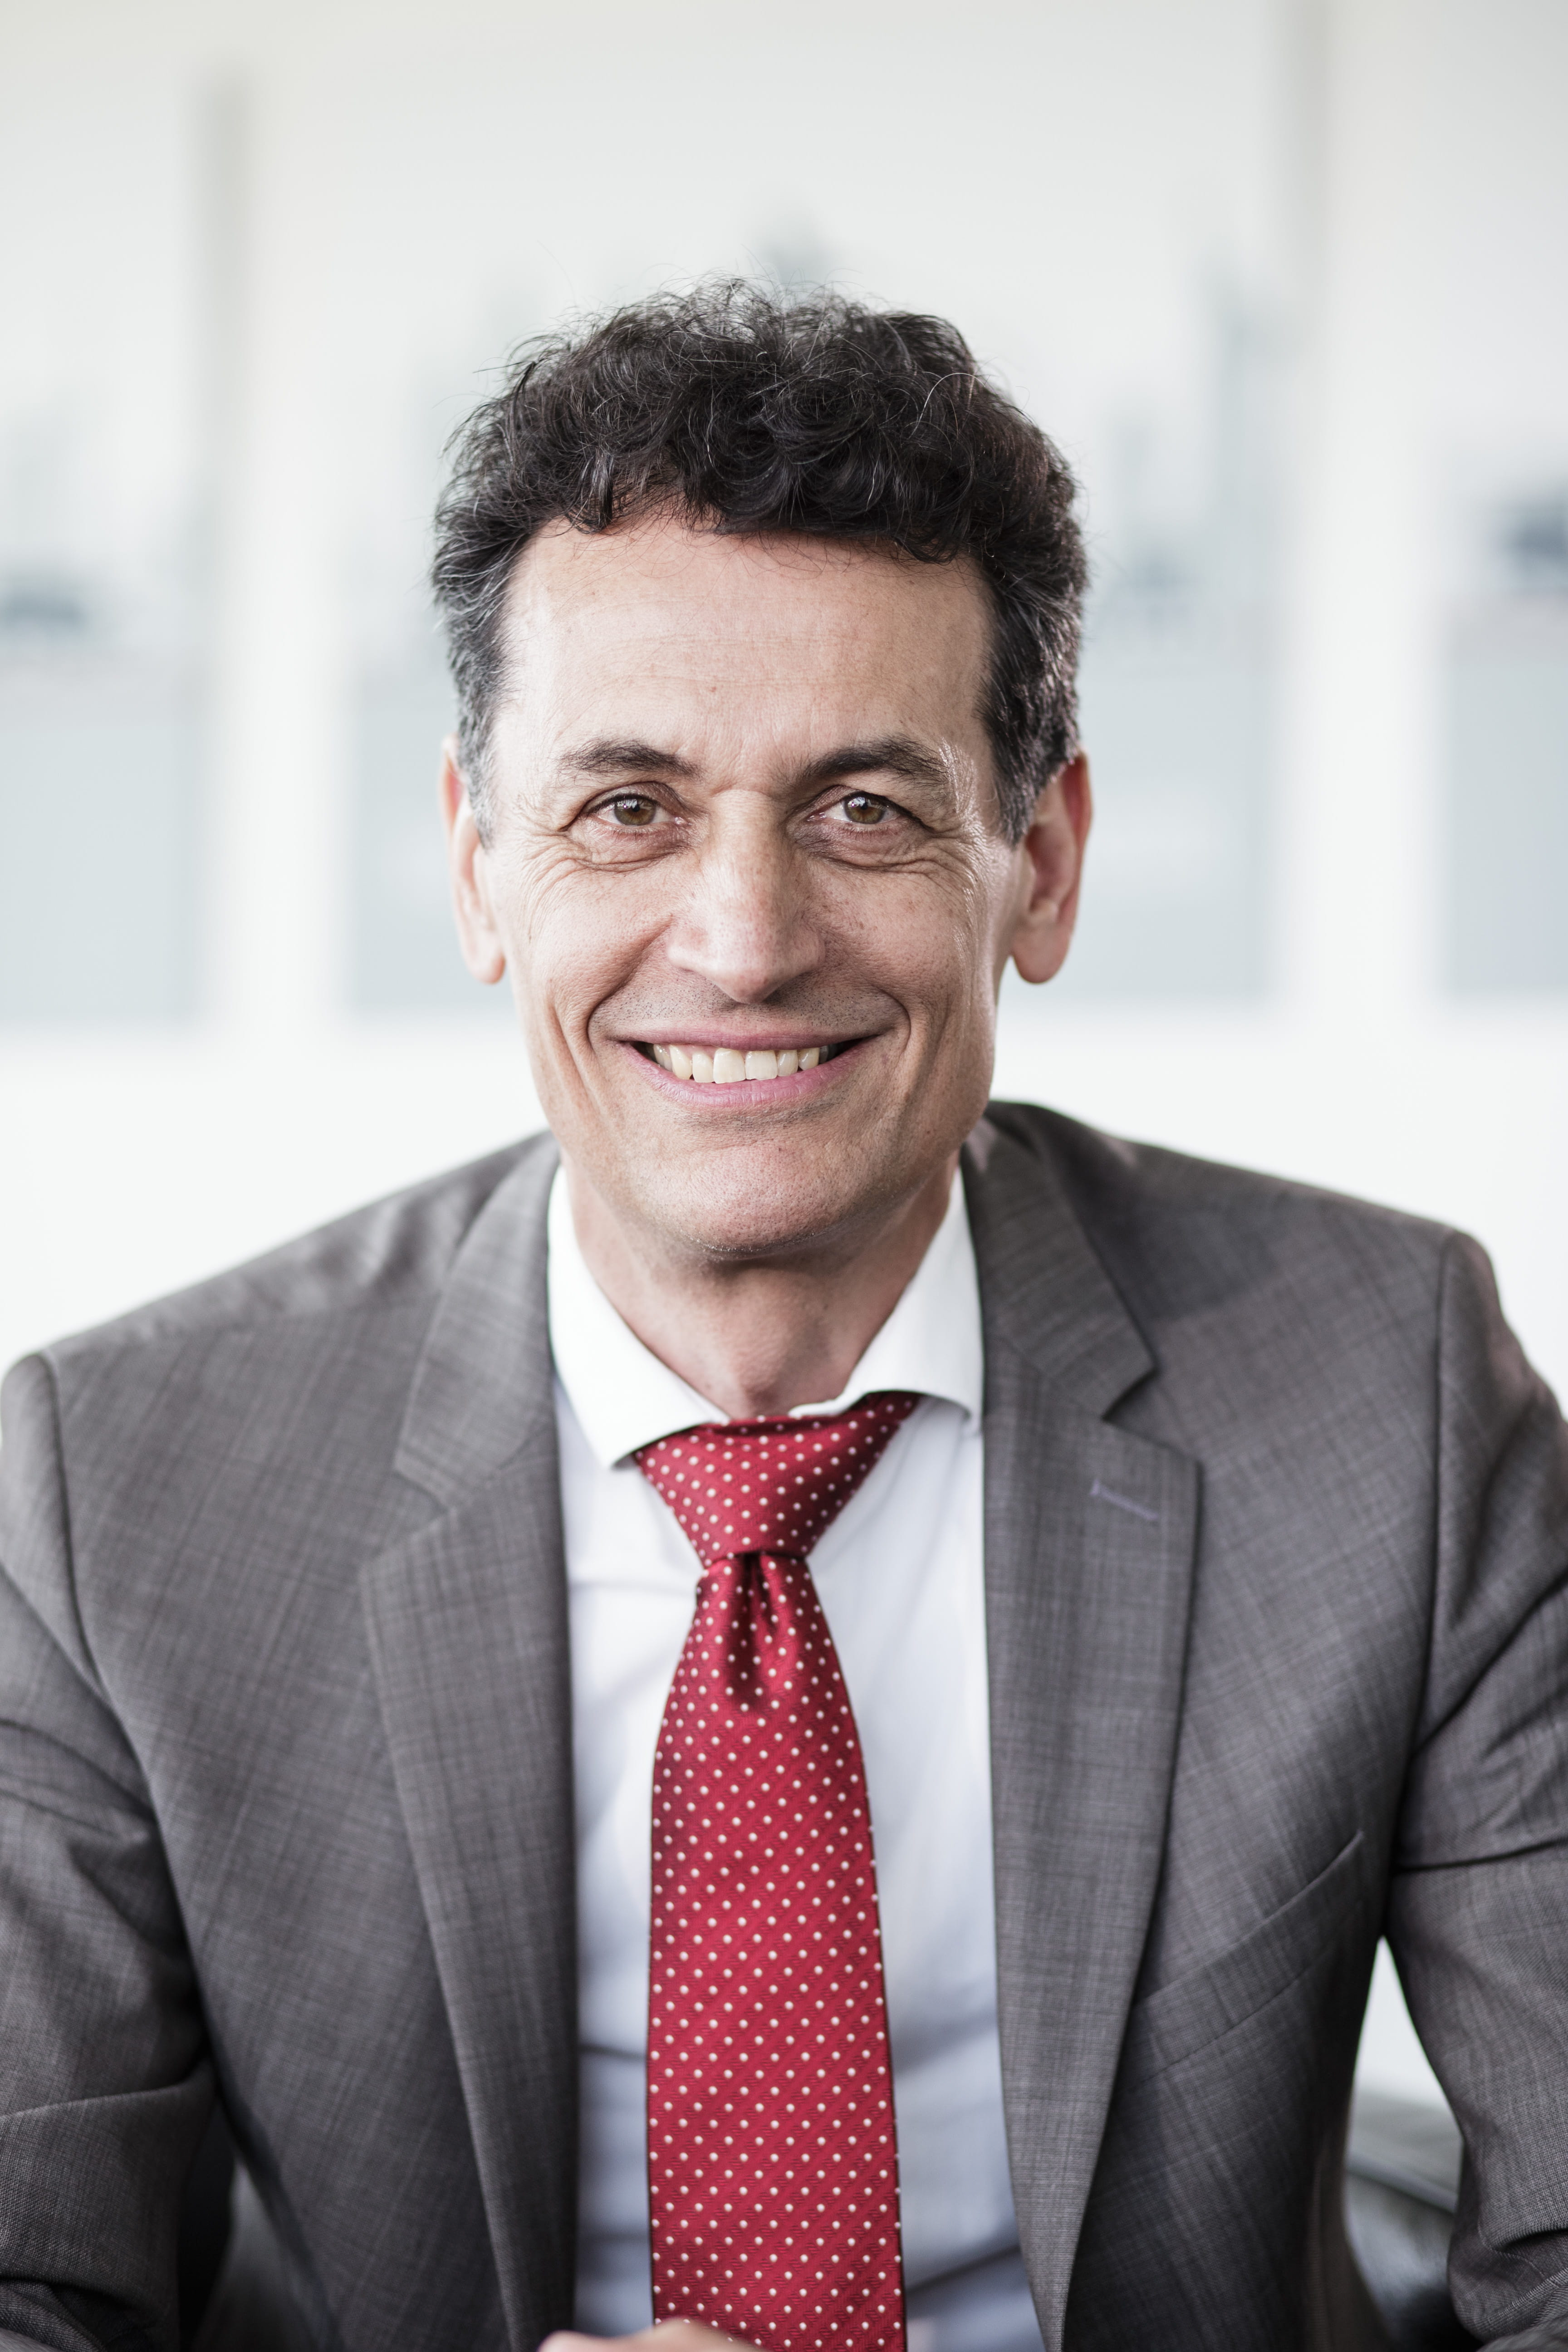 Holger Winklbauer, CEO